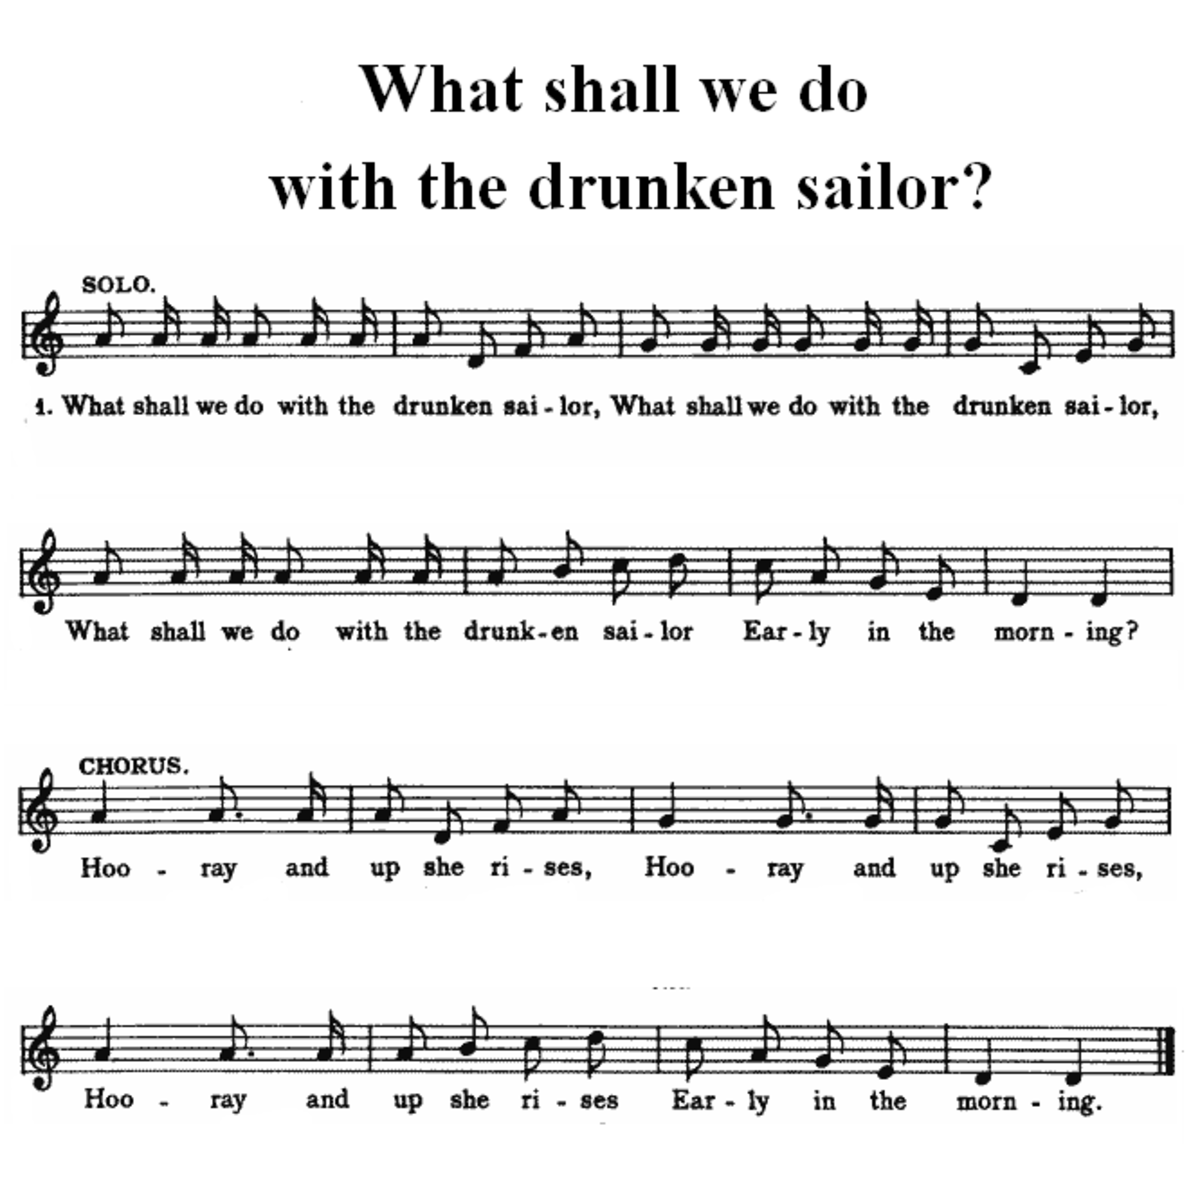 A simple musical score for What Shall We Do With the Drunken Sailor?